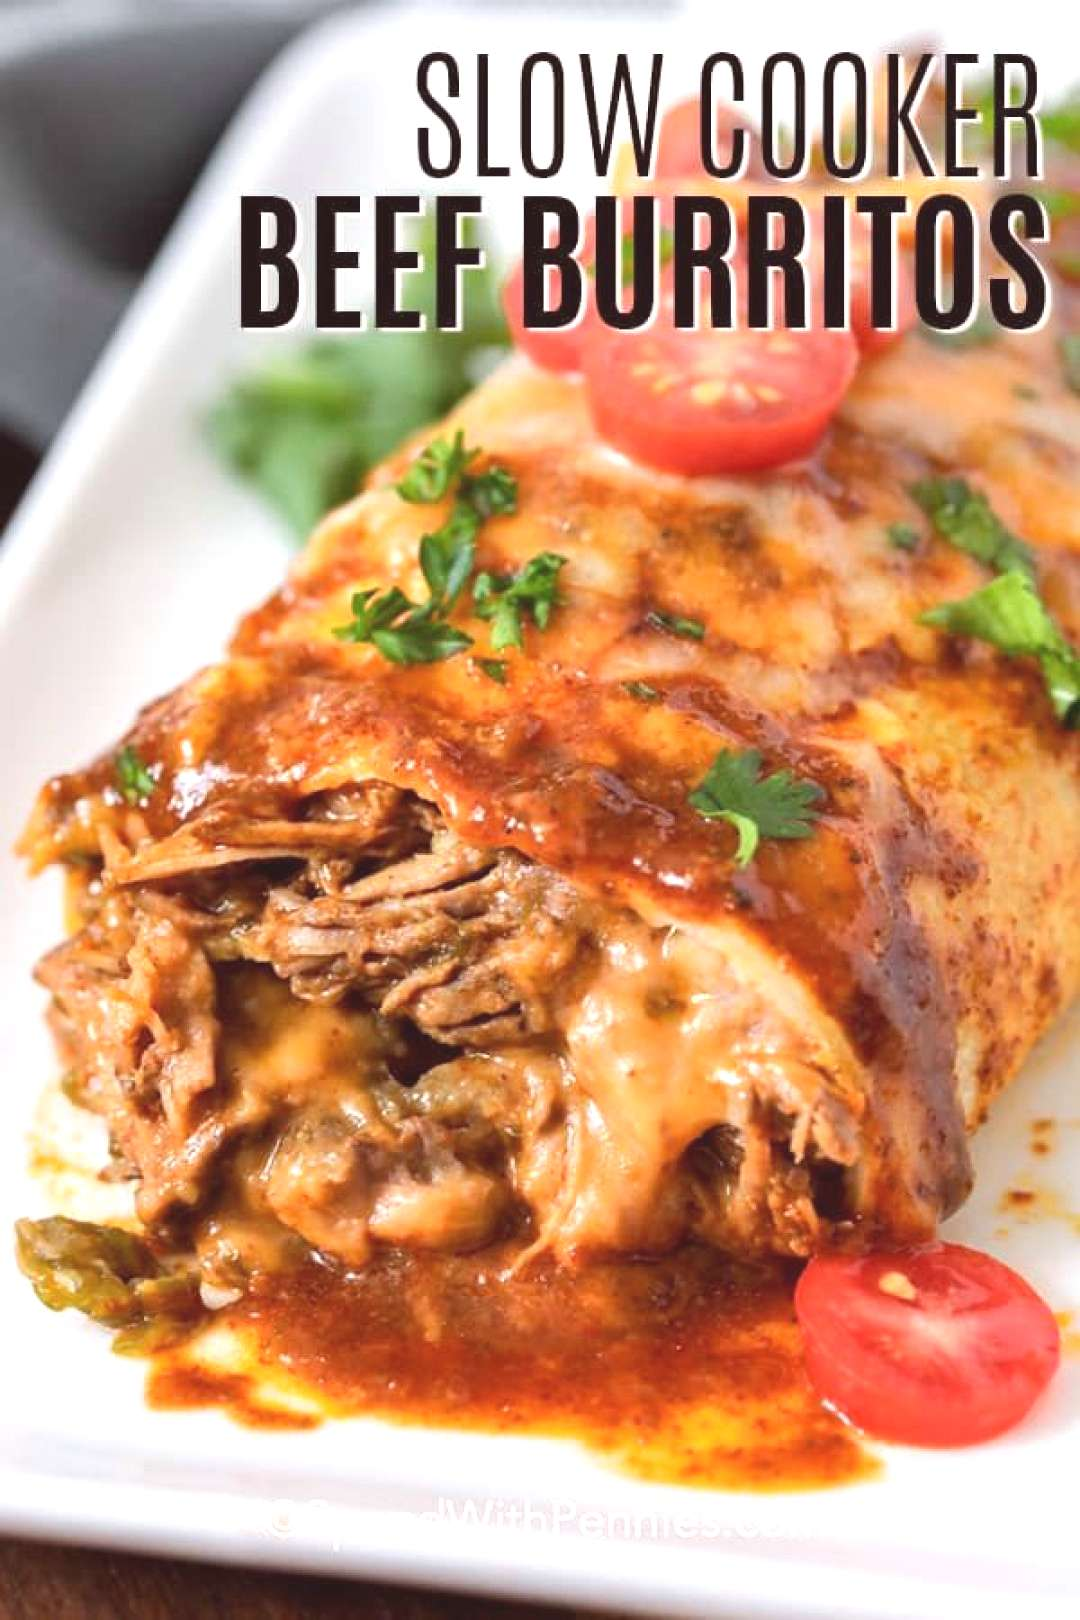 Slow Cooker Beef Burritos {Great for a Crowd} - Spend With Pennies -